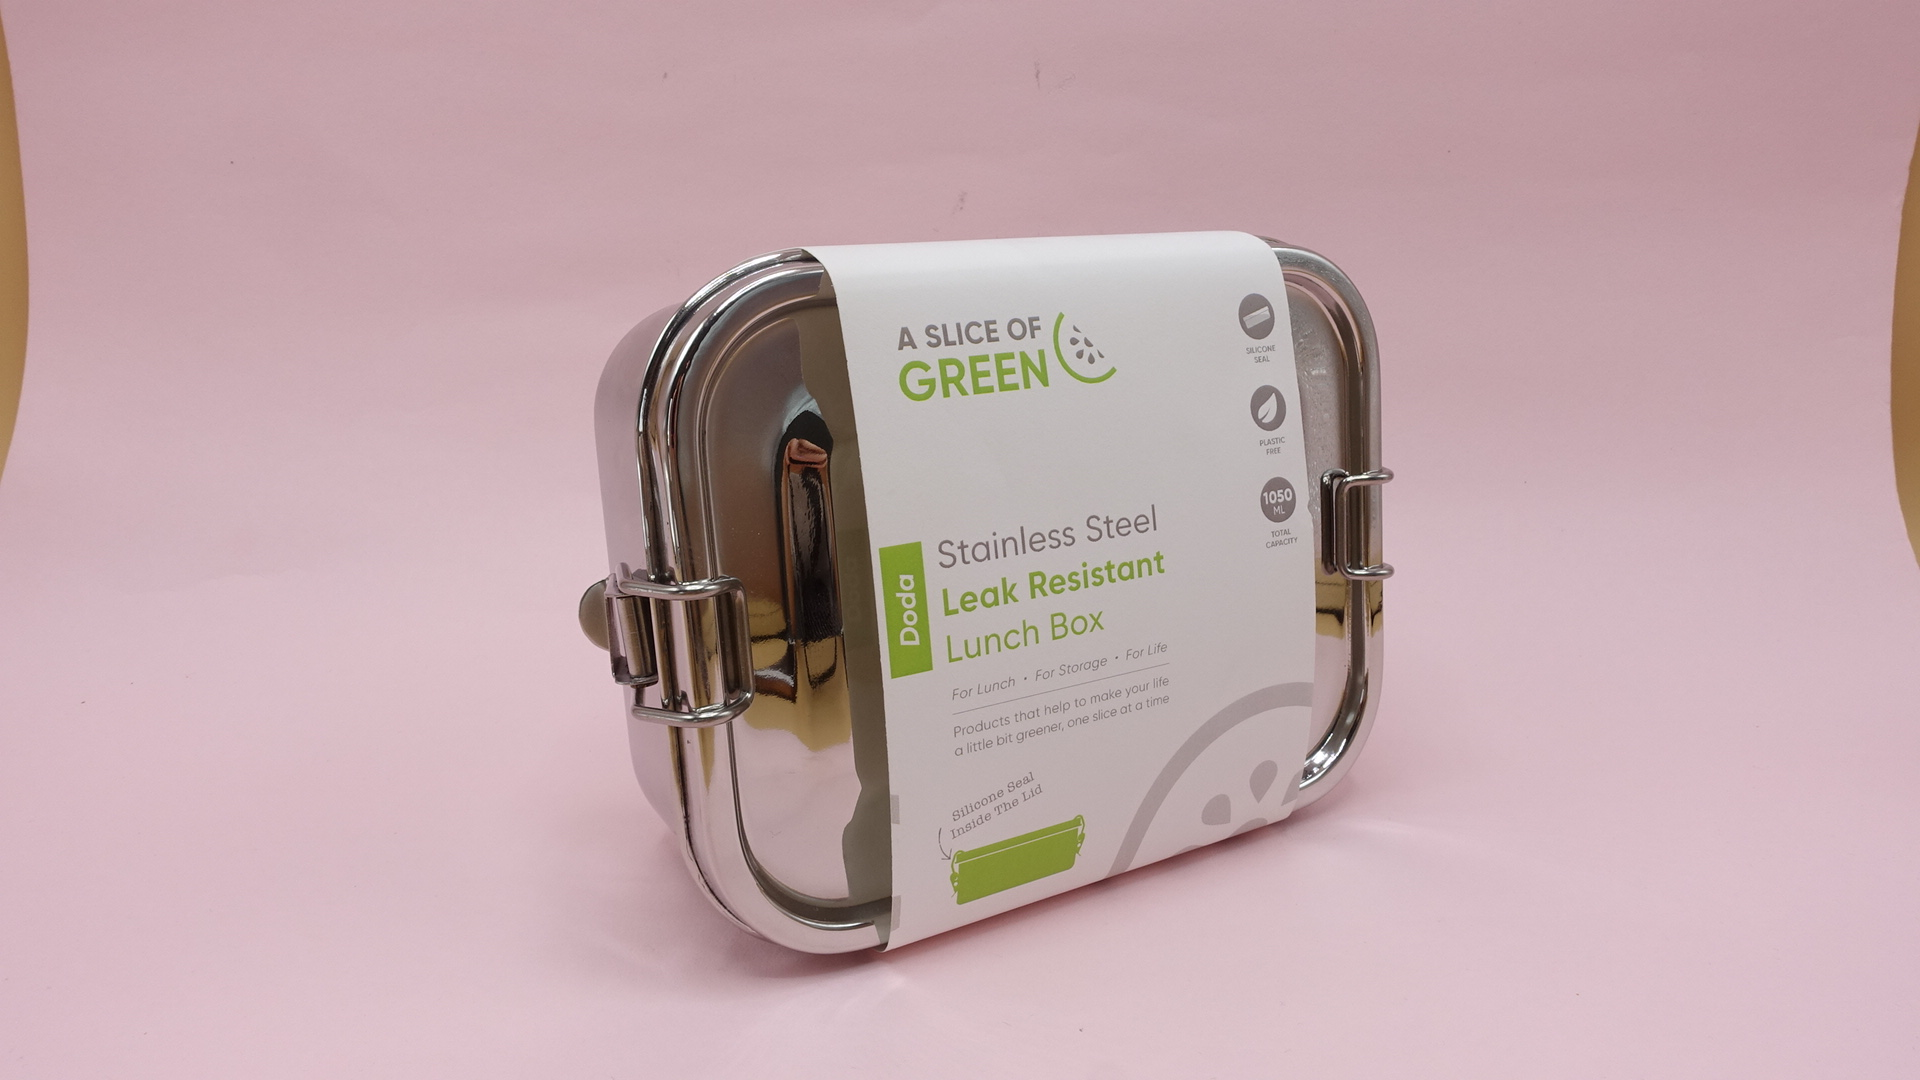 Large Stainless Steel Lunch Box - Leak Resistant